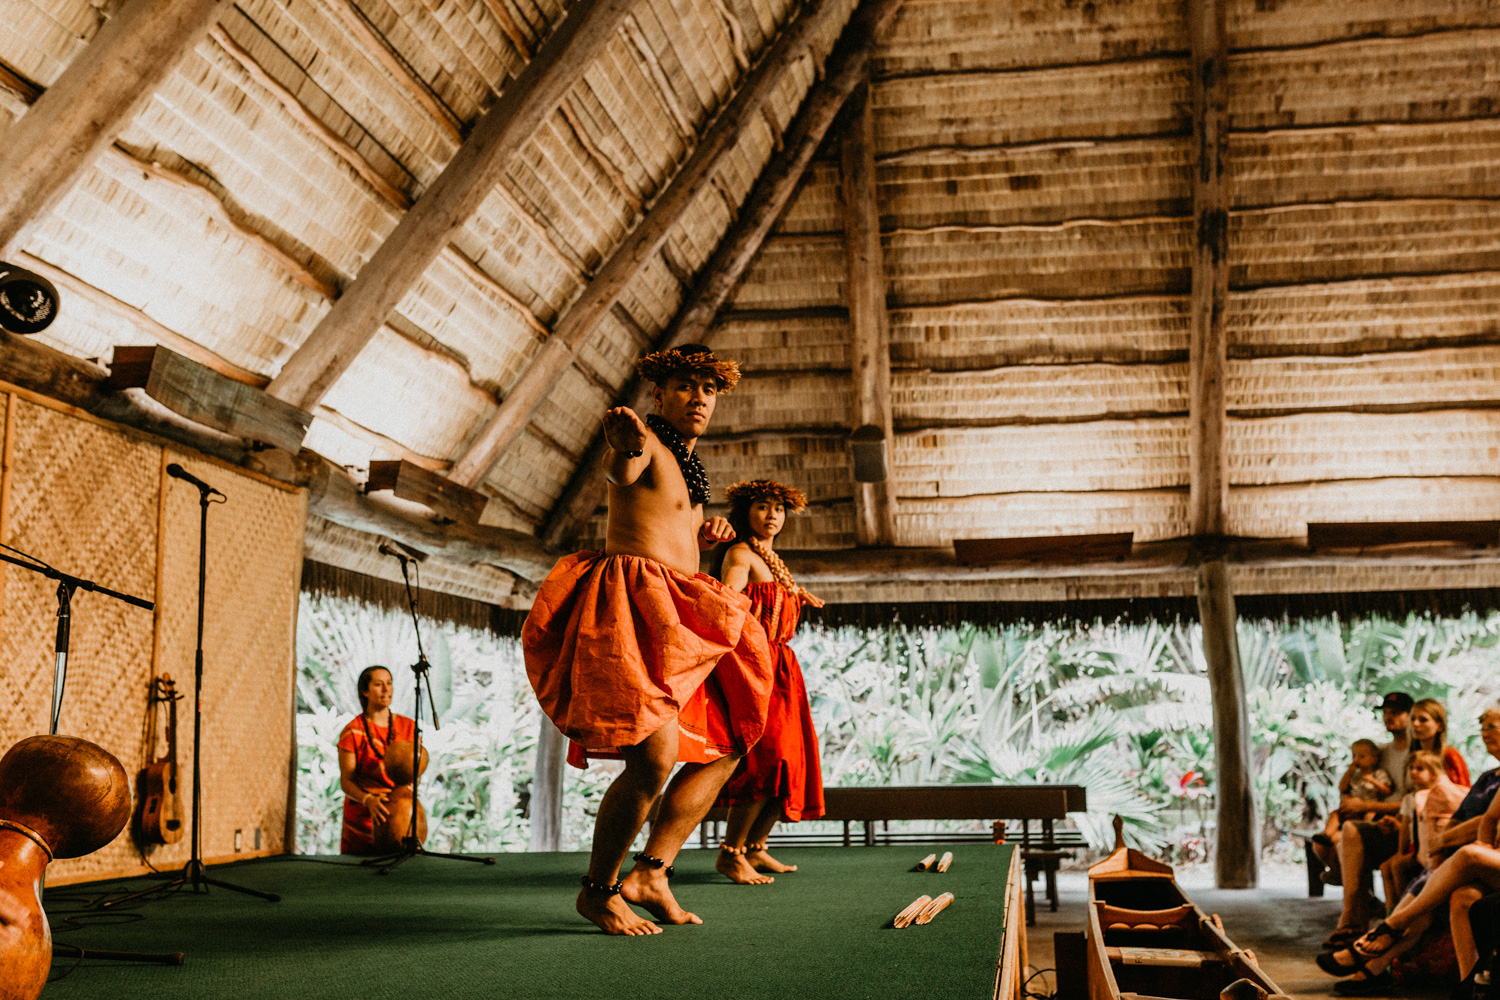 Some fun history about the instrument and dance demonstration in Polynesian Cultural Centre.